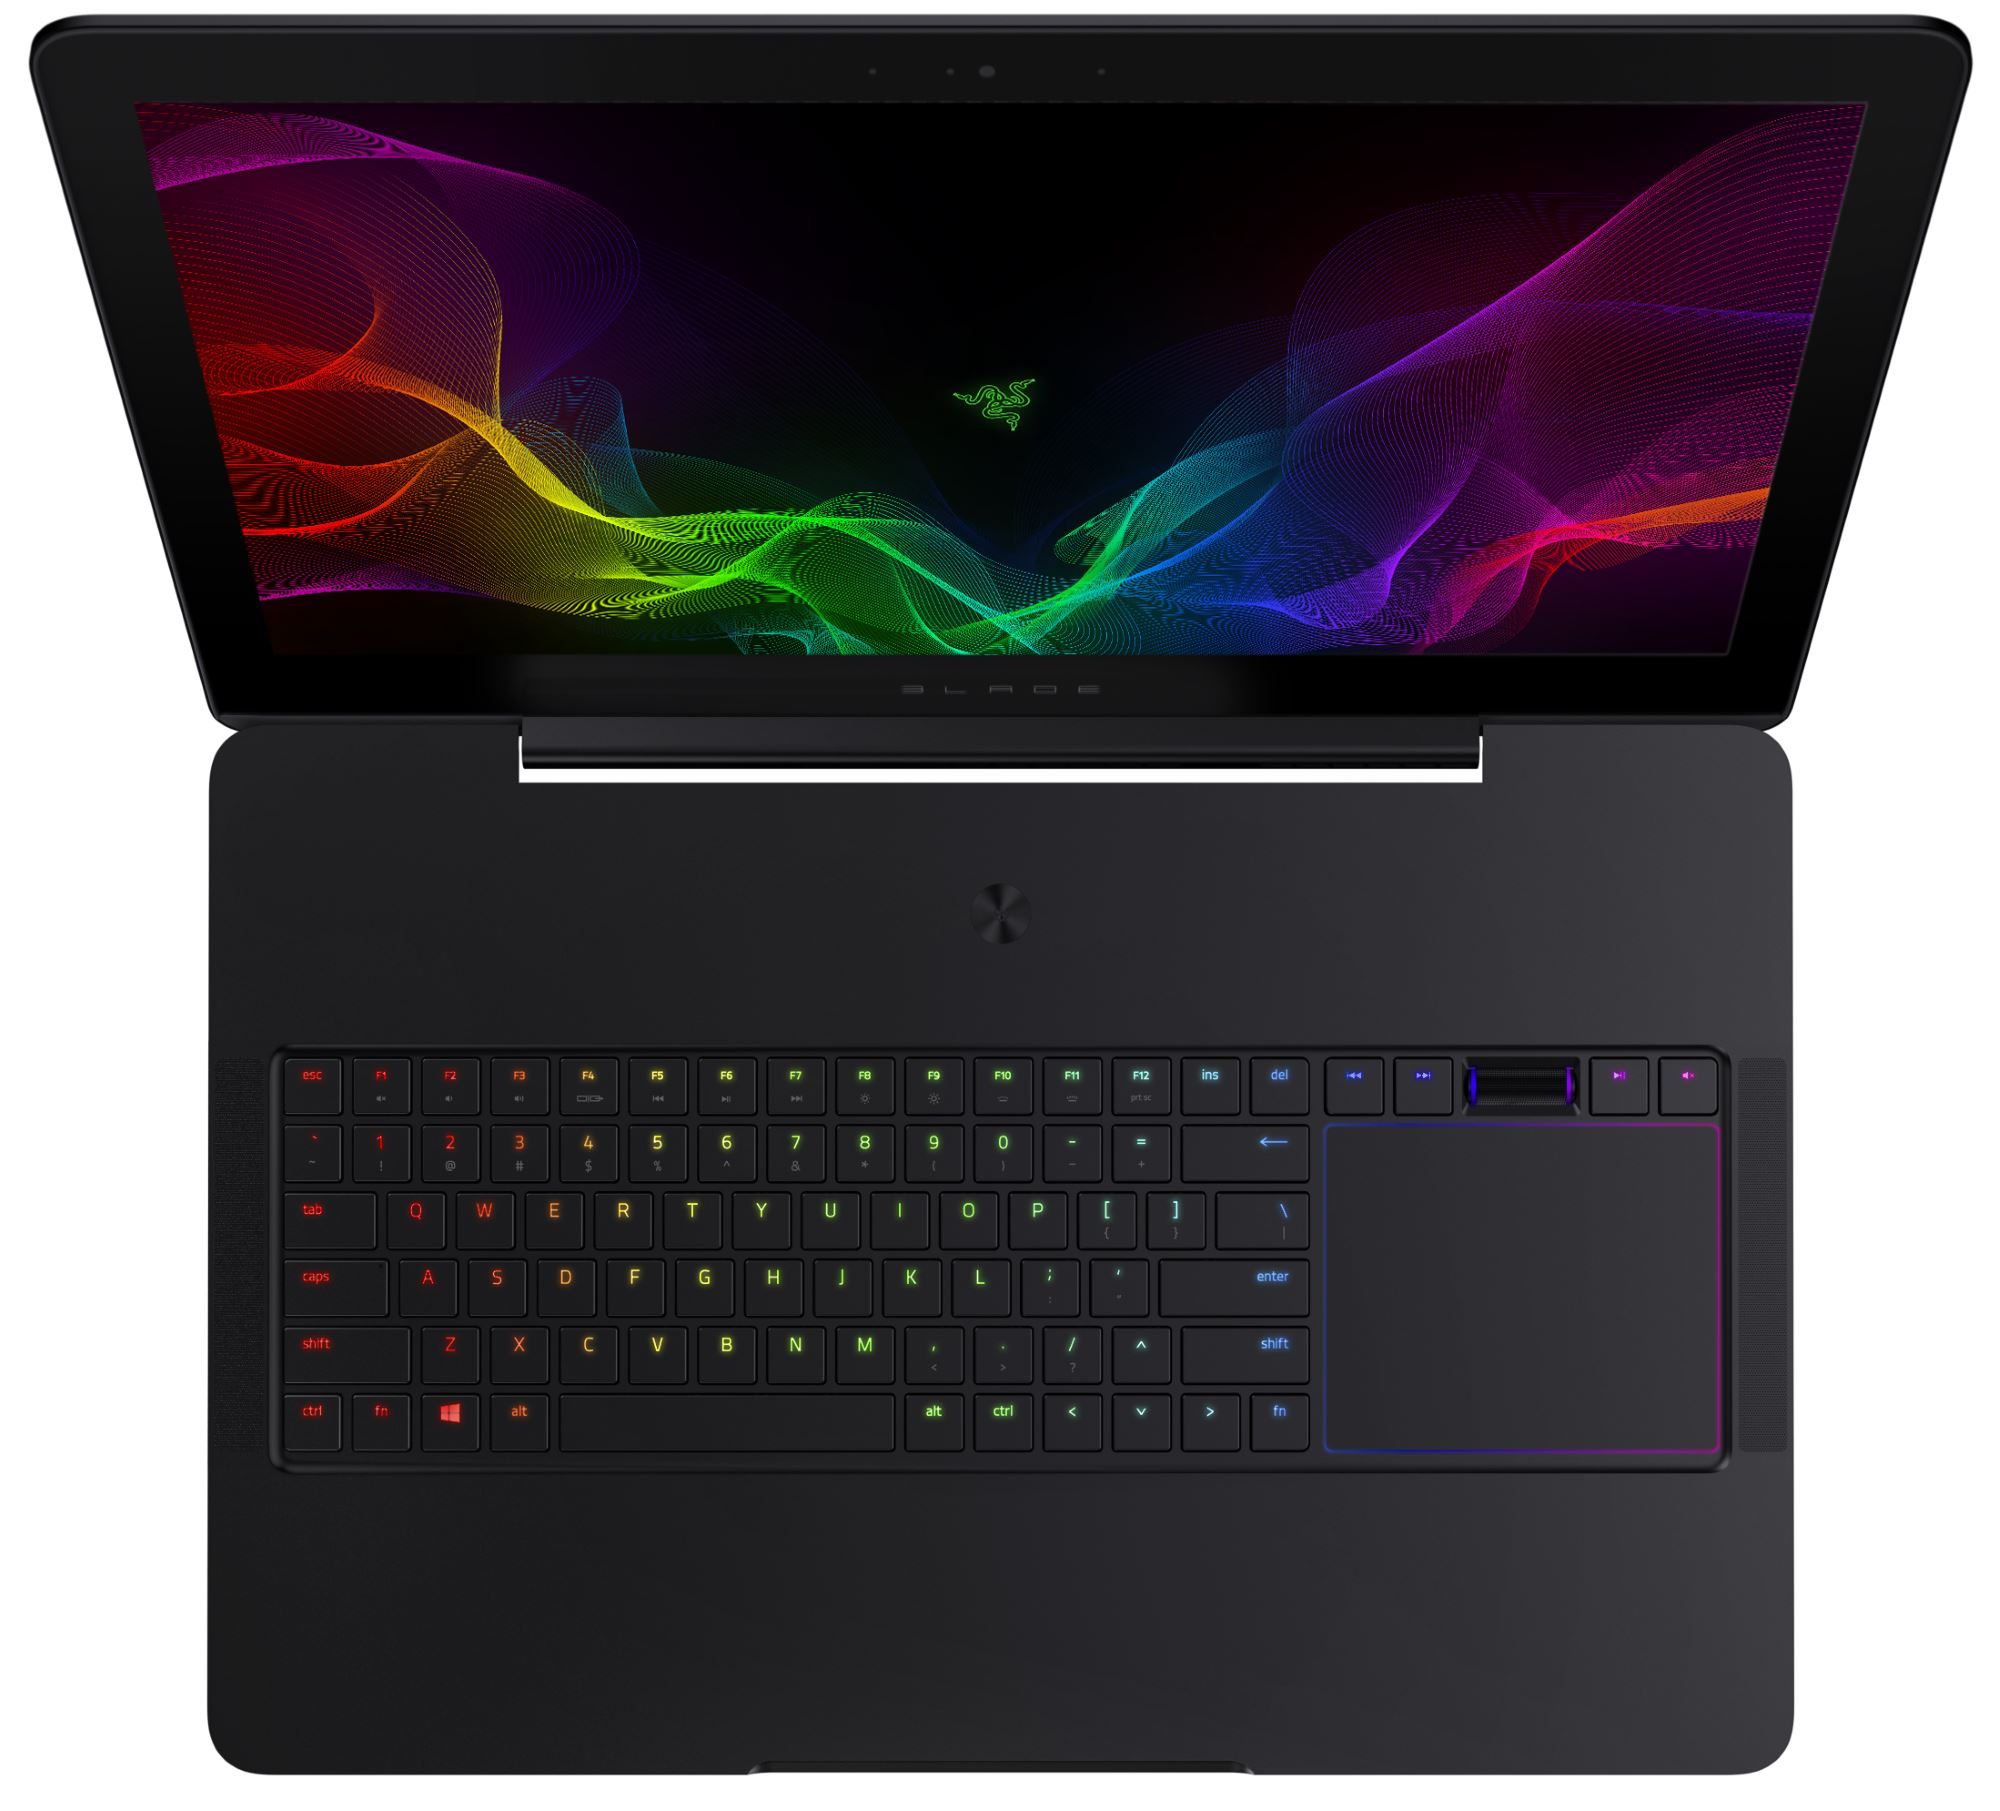 razer reveals new blade pro: gtx 1060 graphics, full hd, lower price